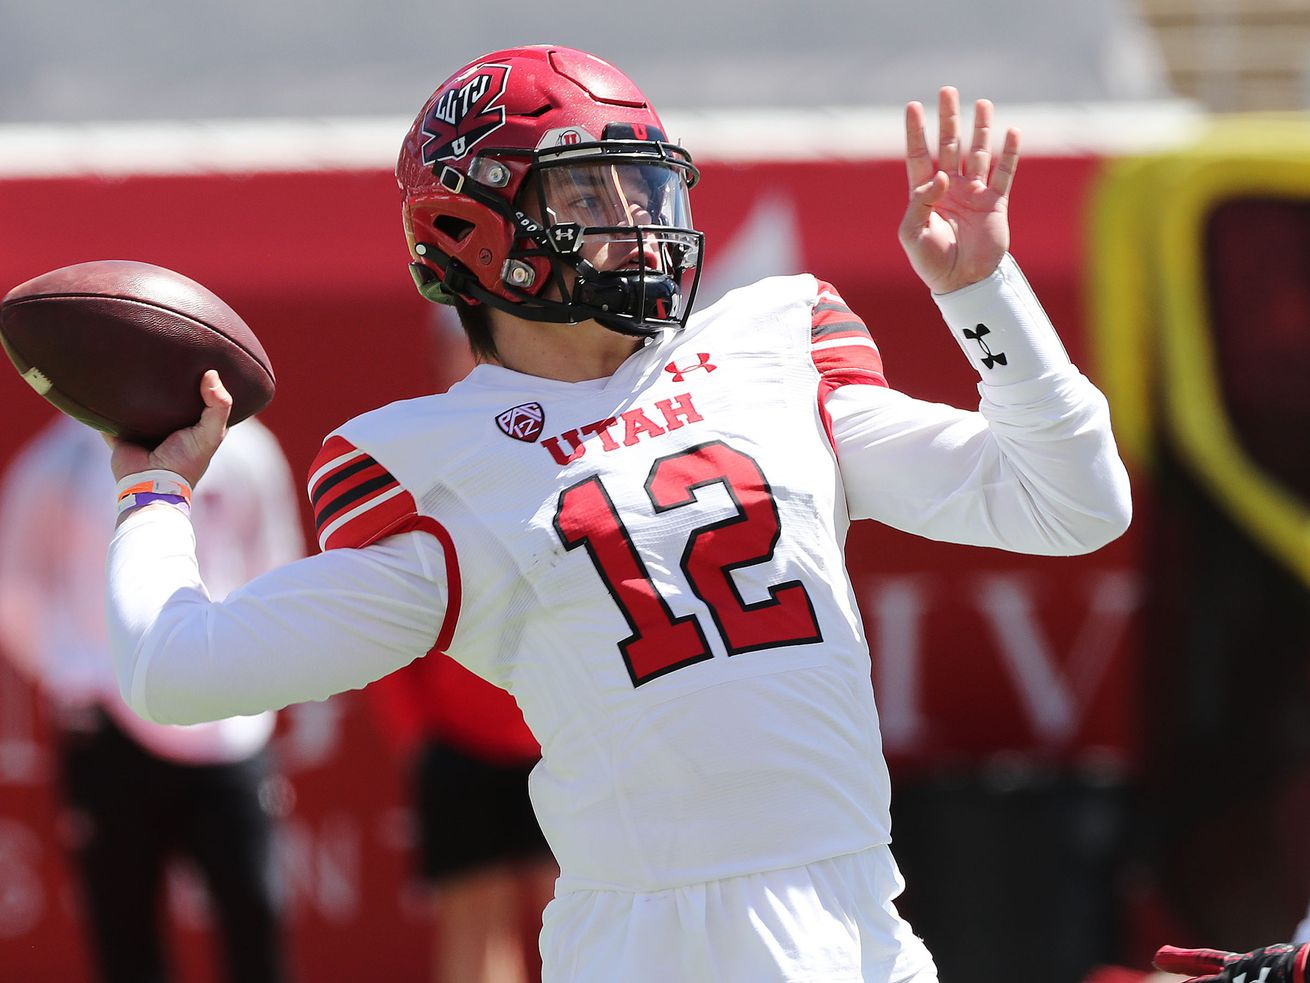 Utah Utes quarterback Charlie Brewer throws during the Red and White Game in Salt Lake City on Saturday, April 17, 2021.